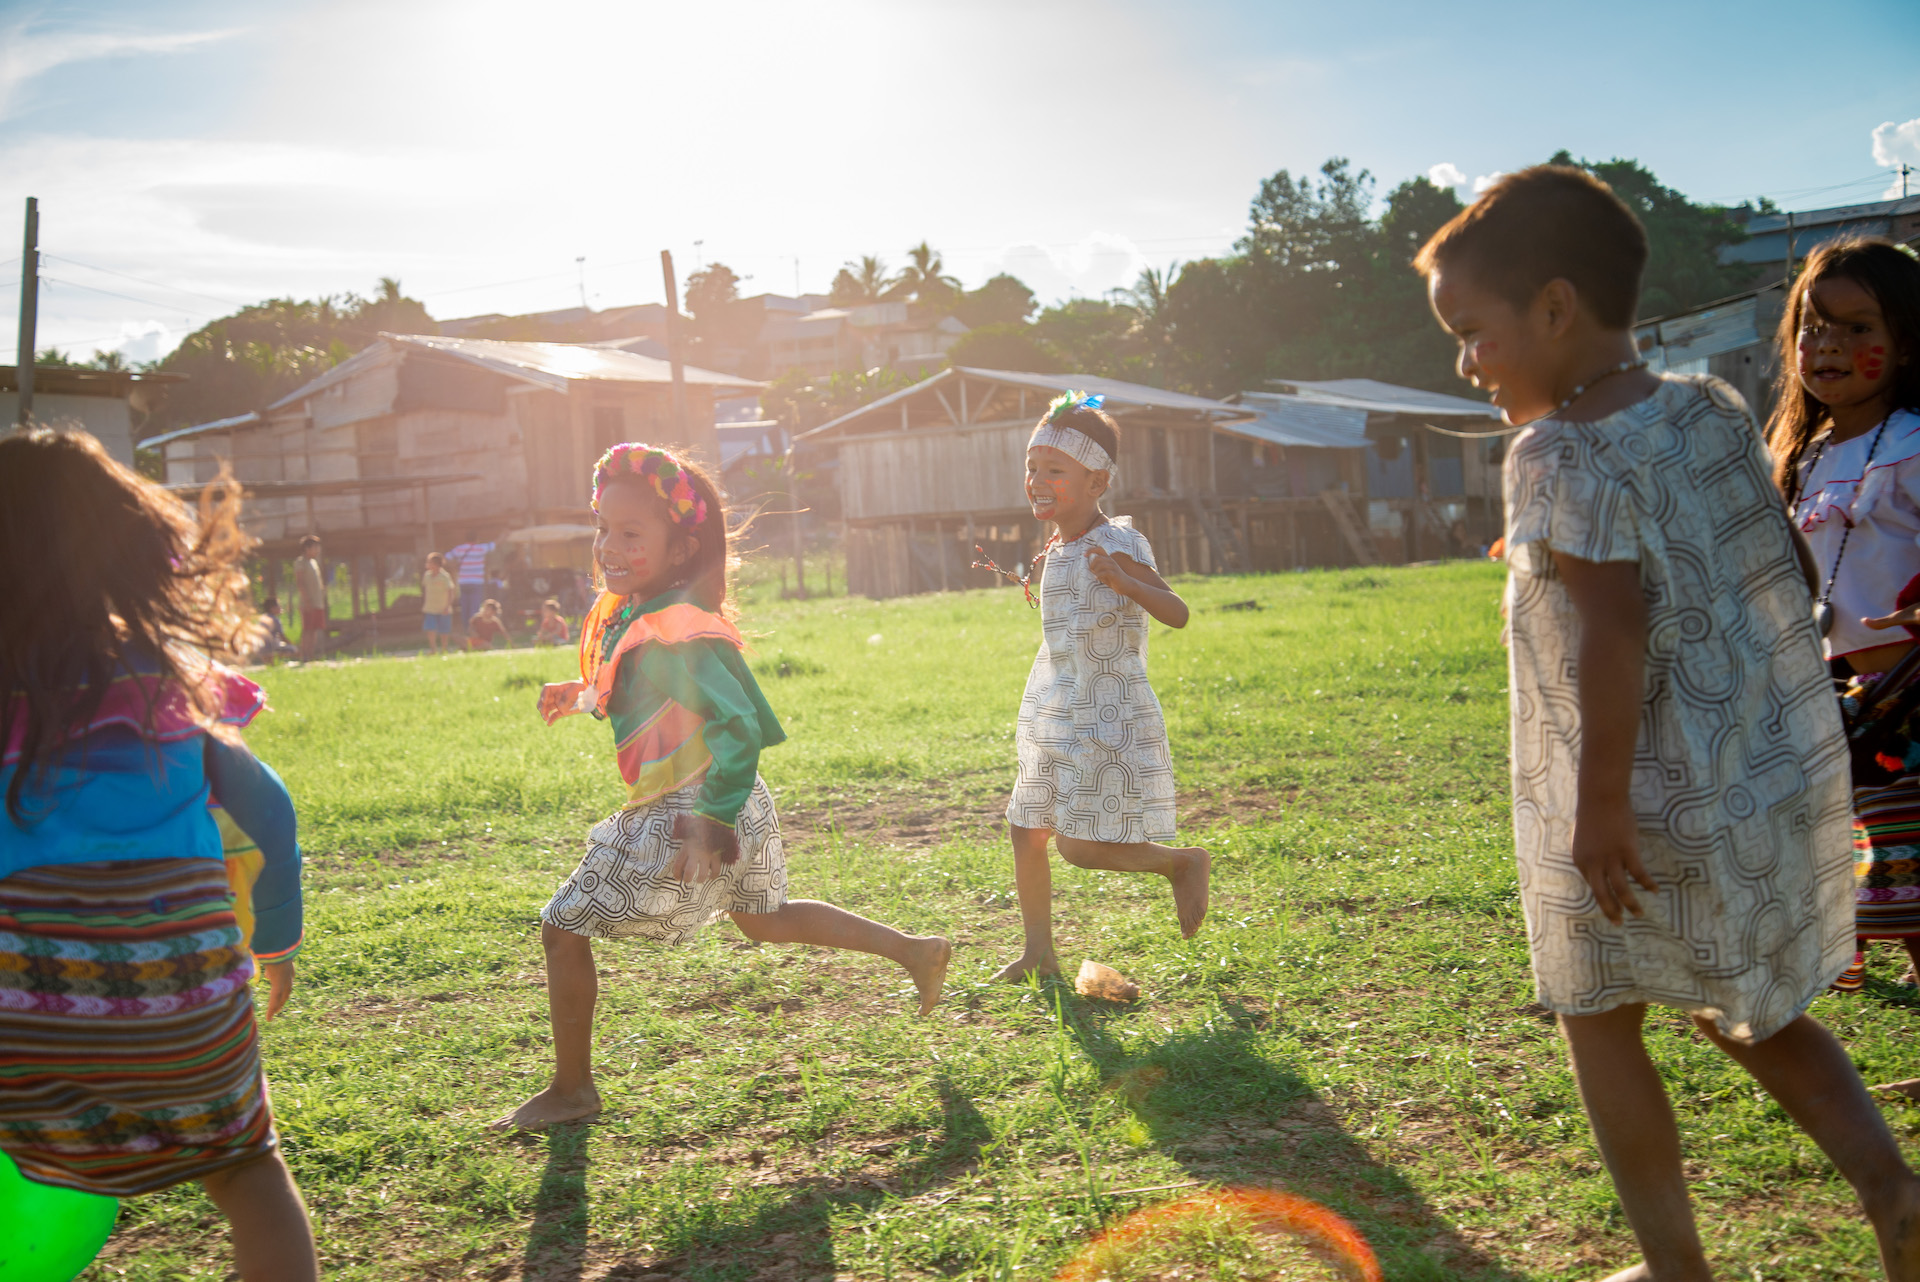 Children in colourful traditional dress run through a field.